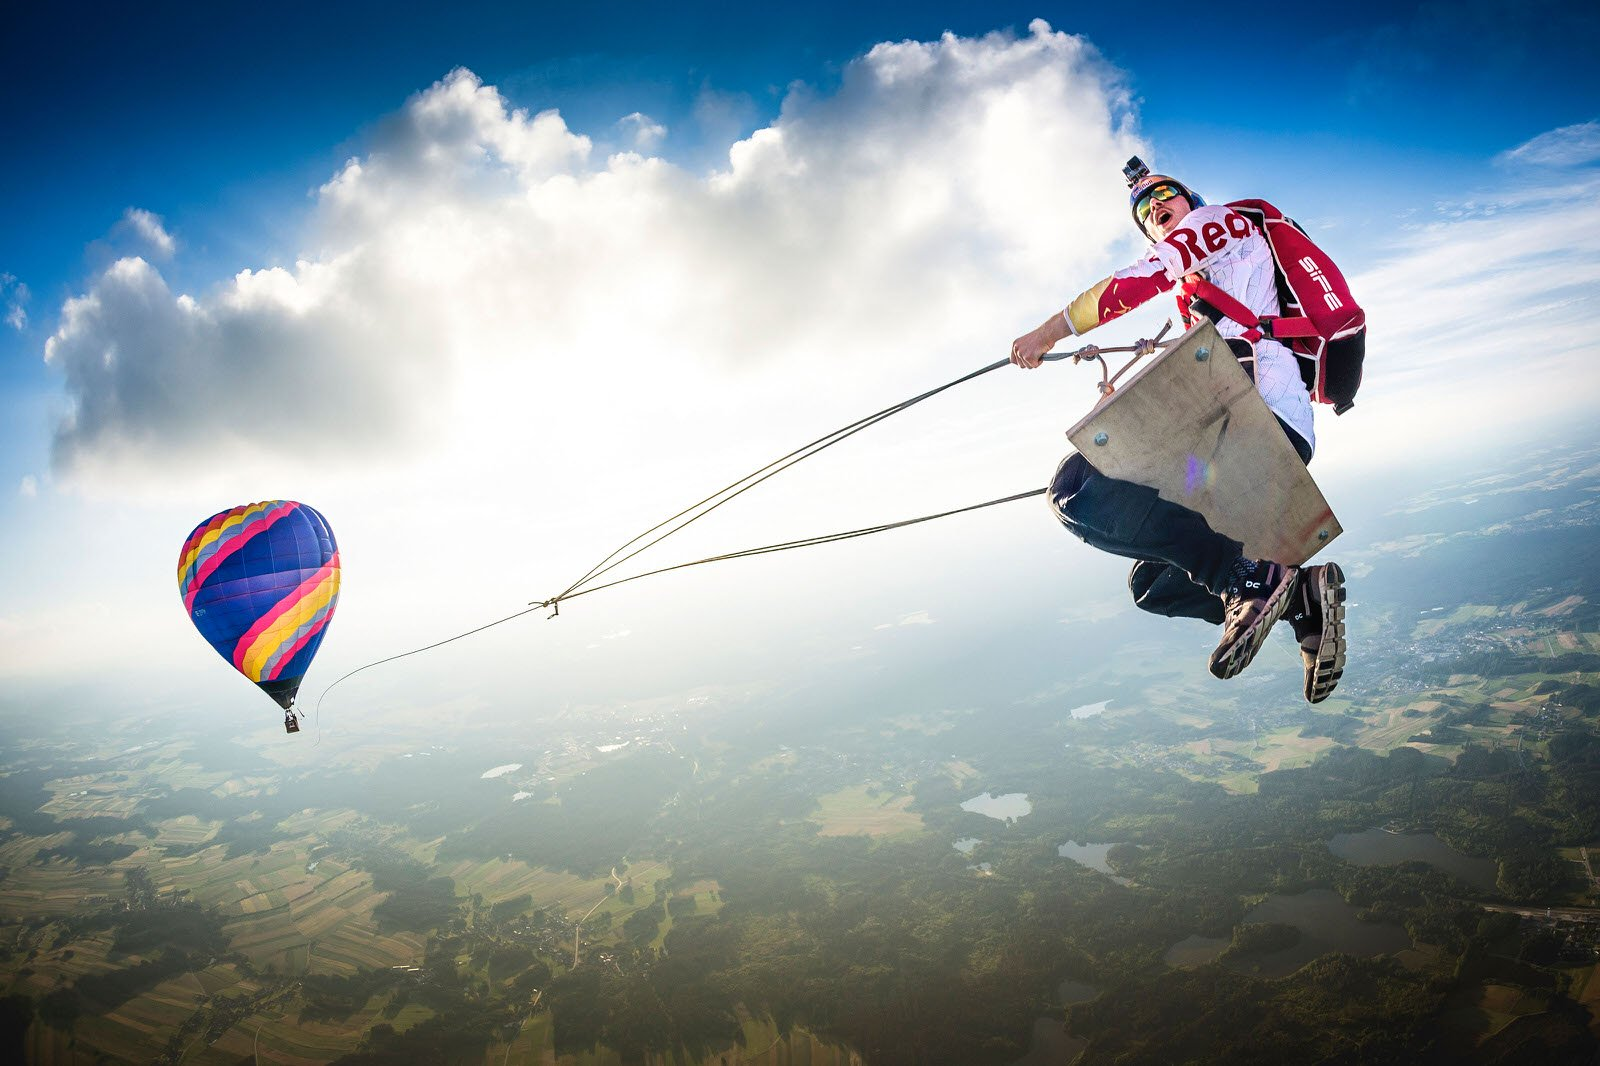 Wings: Philip Platzer, Austria, captures athlete Marco Fürst flying on an unthinkable hot air balloon swing in Fromberg, Austria.